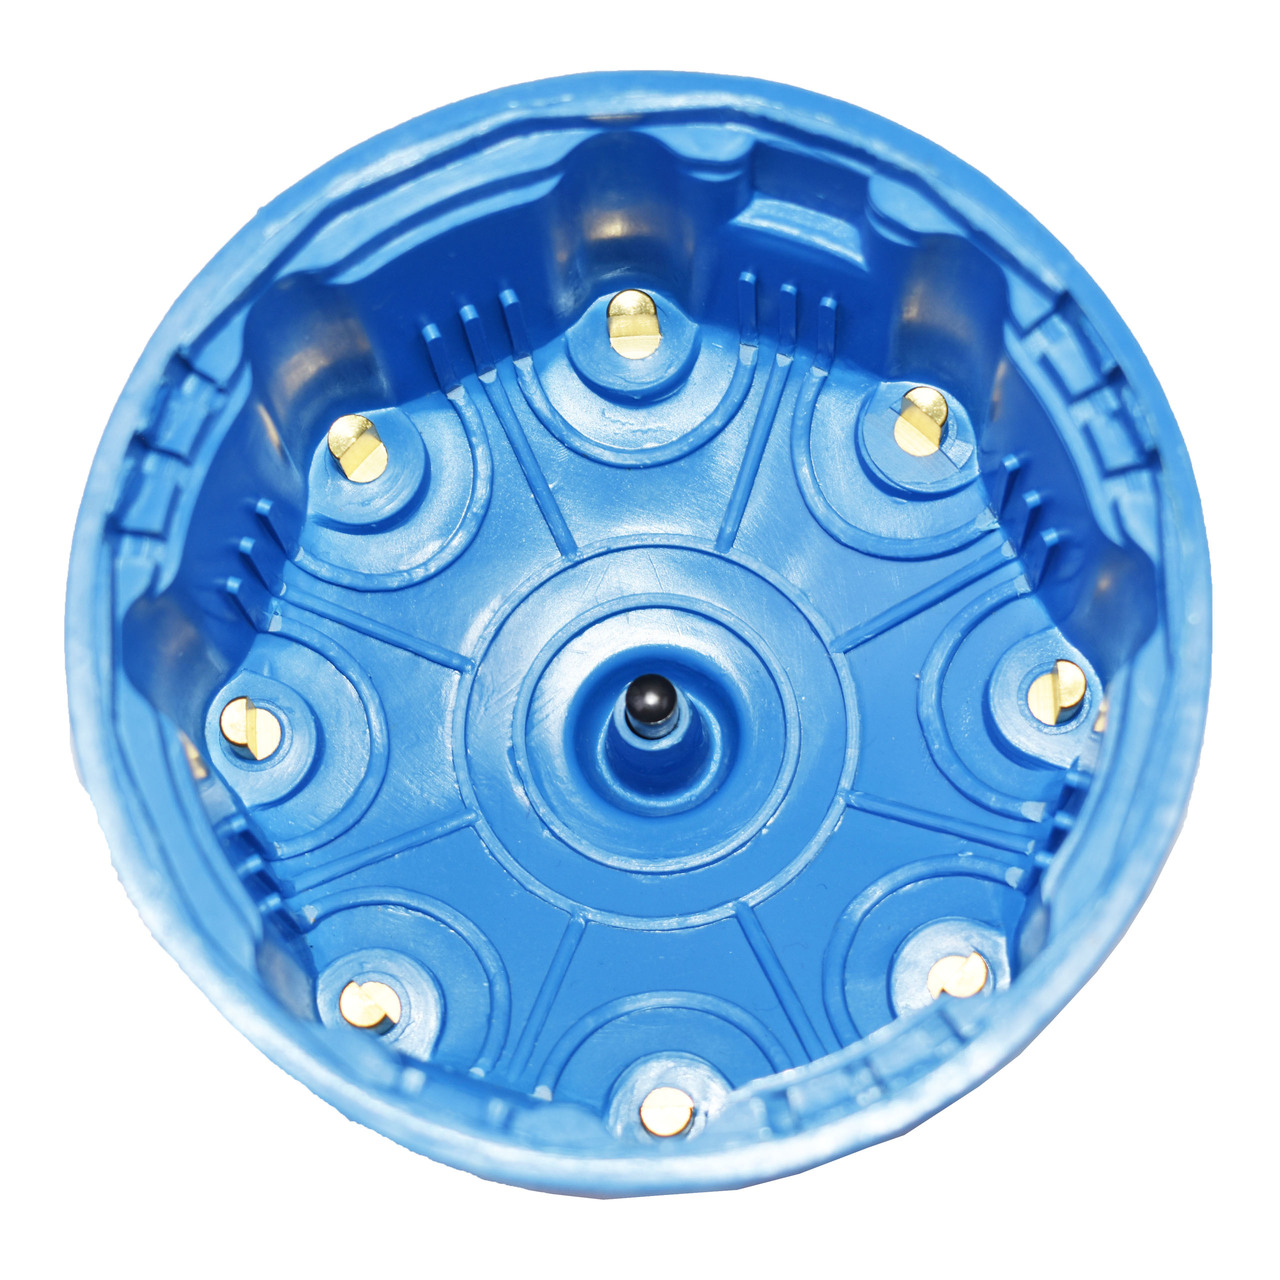 A-Team Performance 8-Cylinder Pro Billet & Ready to Run Cap & Rotor Kit Female Cap Fits A-Team Ready to Run Distributors (BLUE)